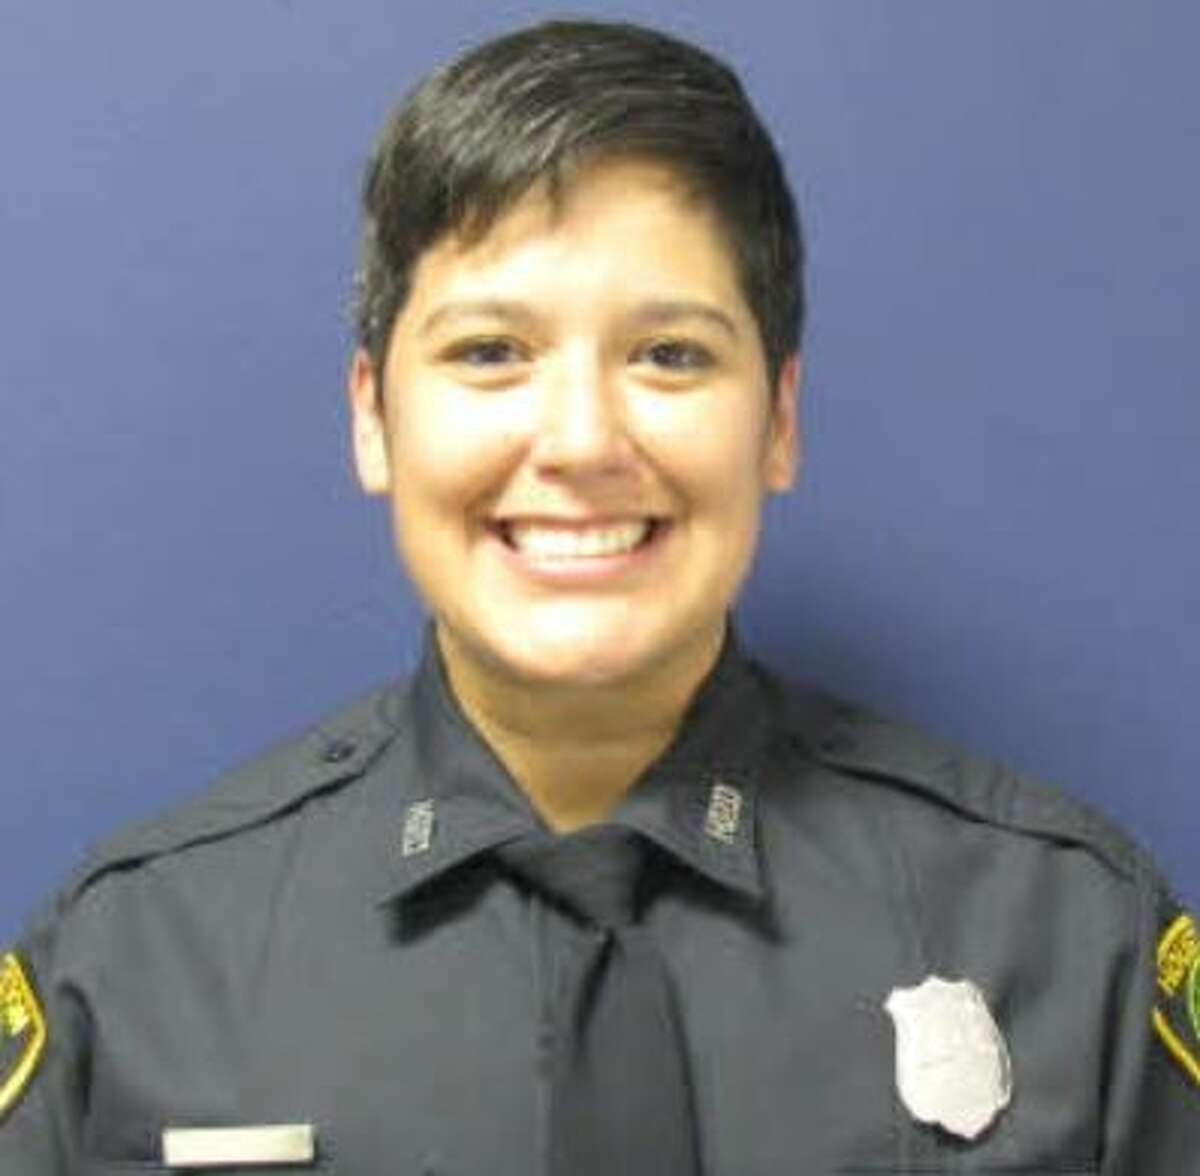 Houston Police Department officer Gizelle Solorio was killed in a crash near Sealy on Thursday, Dec. 19, 2019.